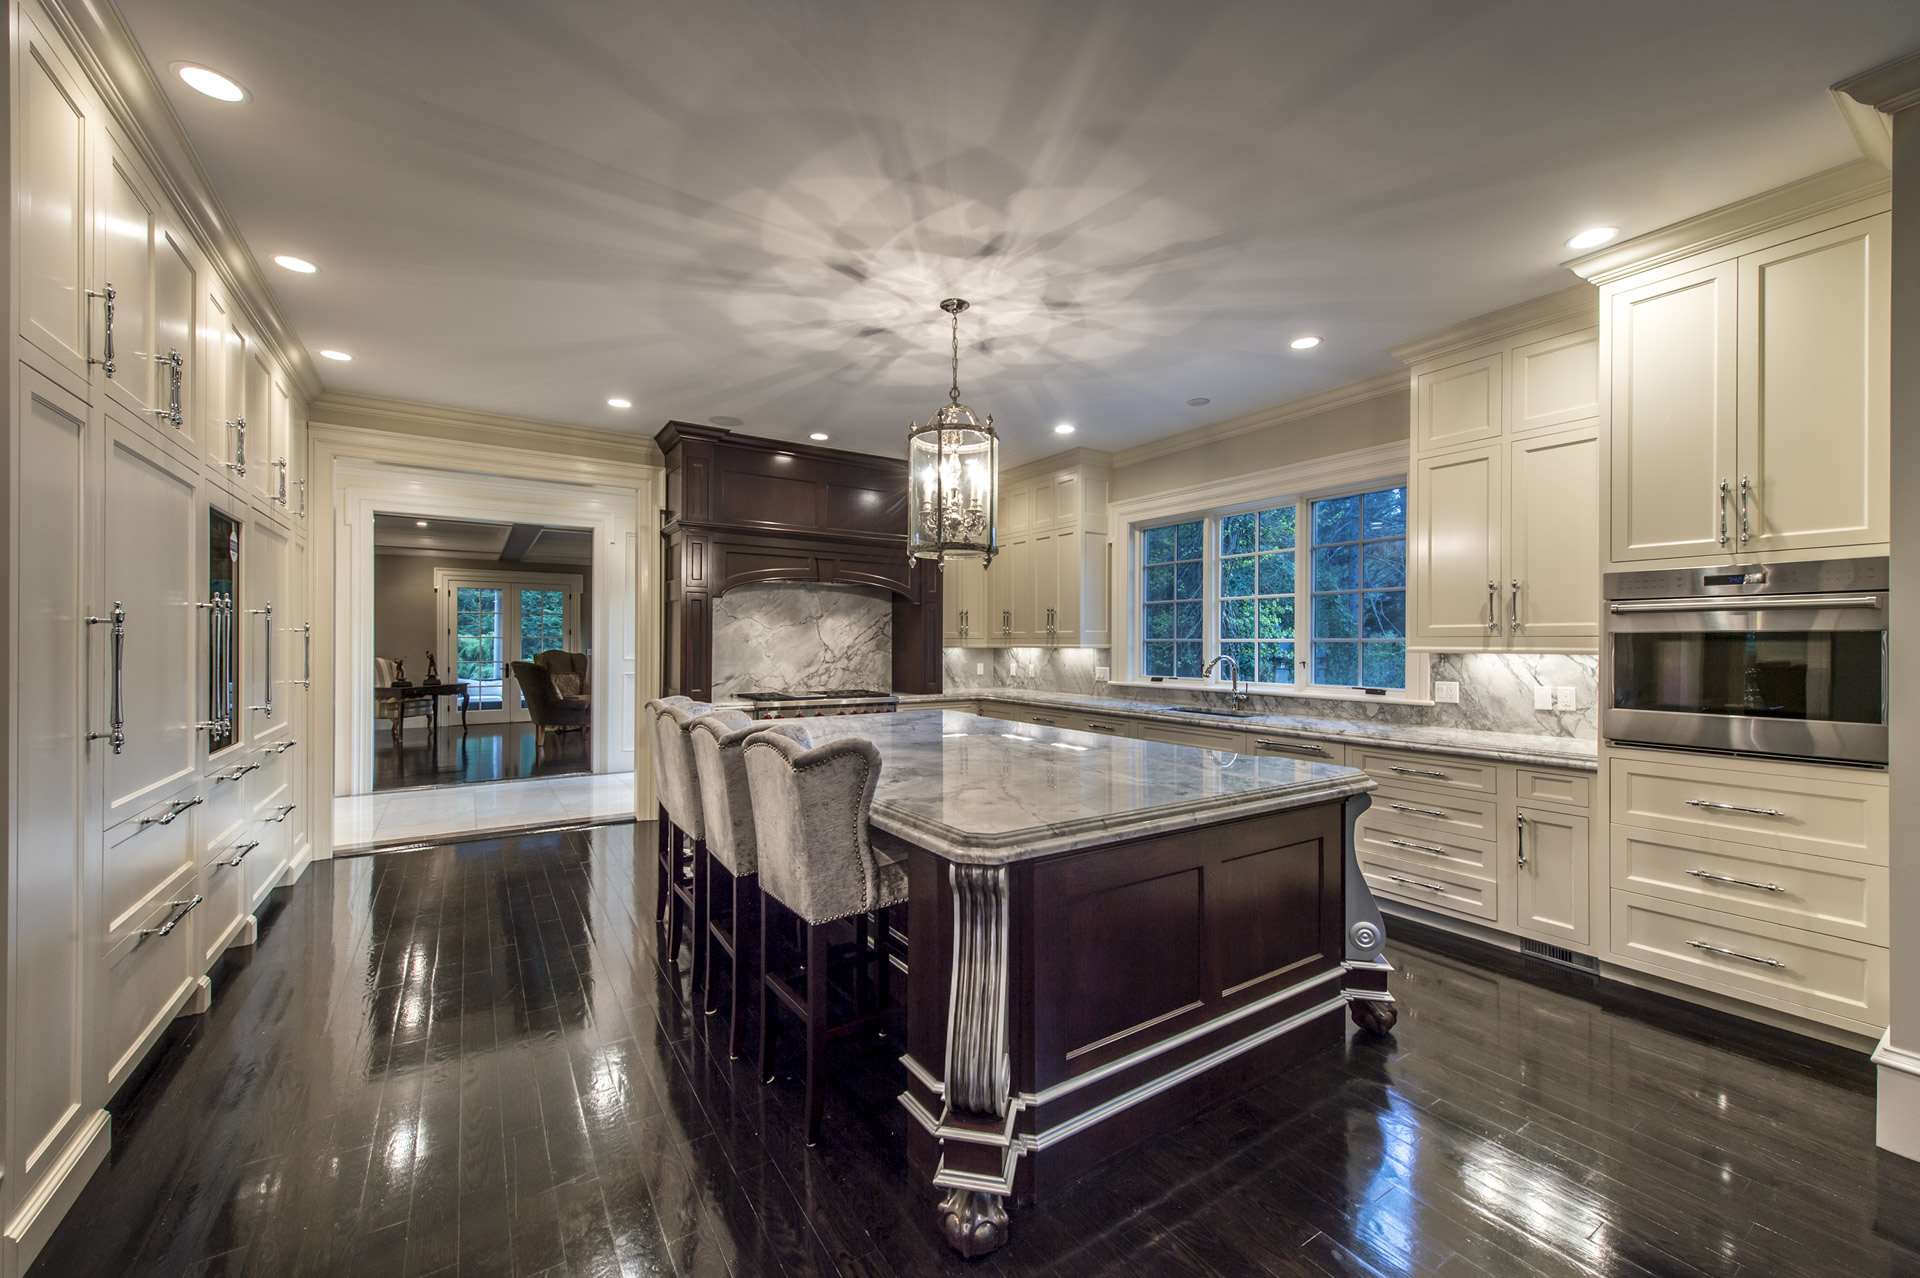 C Stumpo Custom Kitchens